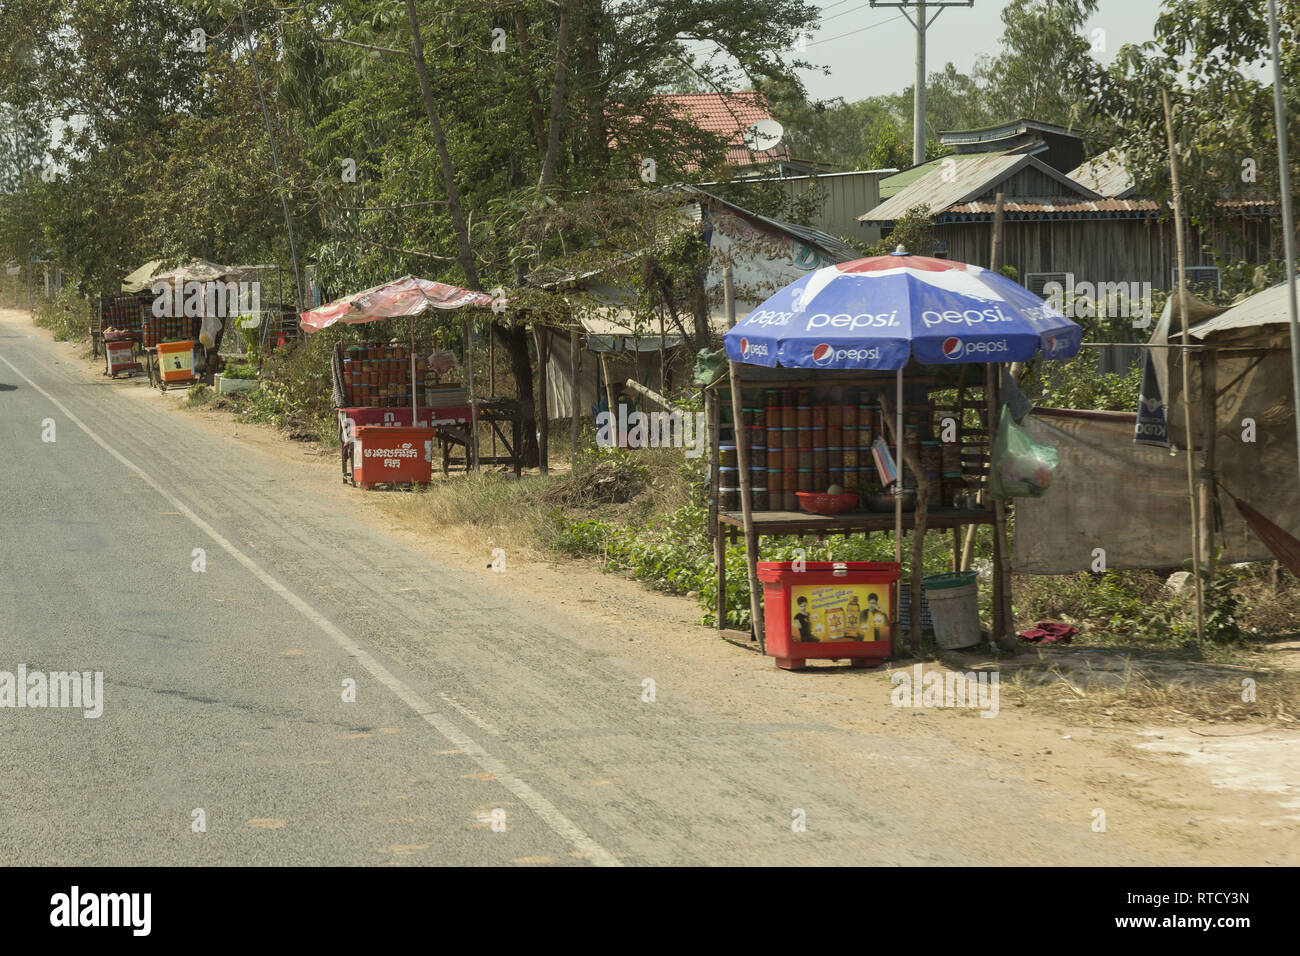 Refreshment stalls along the road in Cambodia - Stock Image